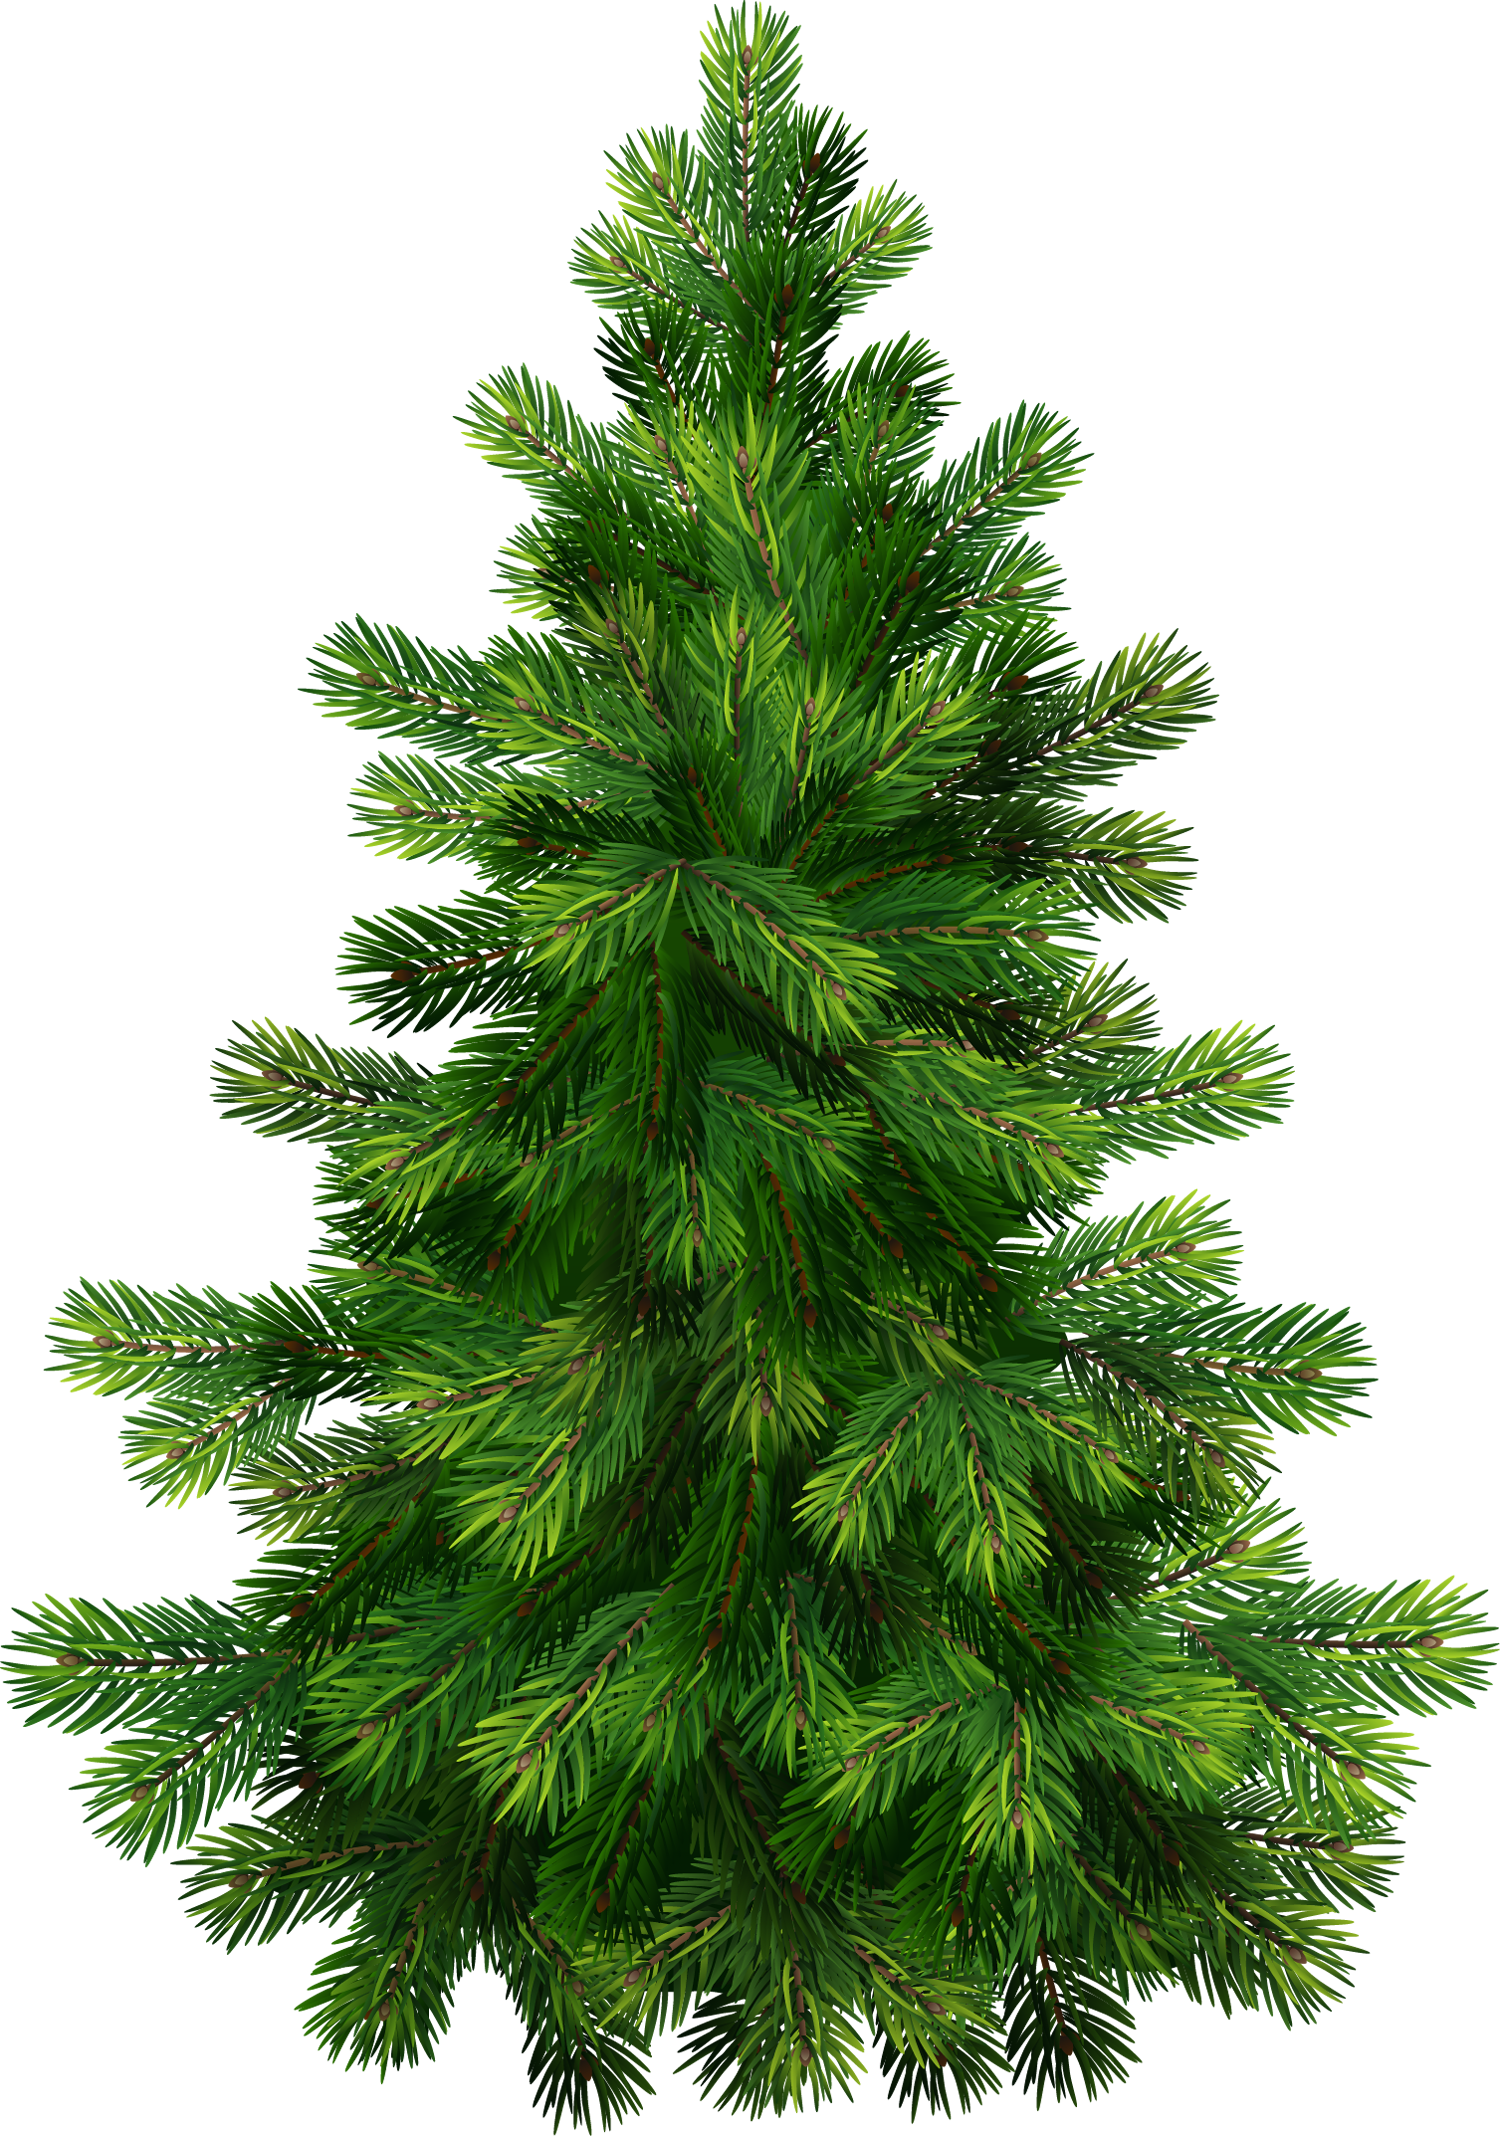 Christmas pine tree png. Transparent clipart gallery yopriceville